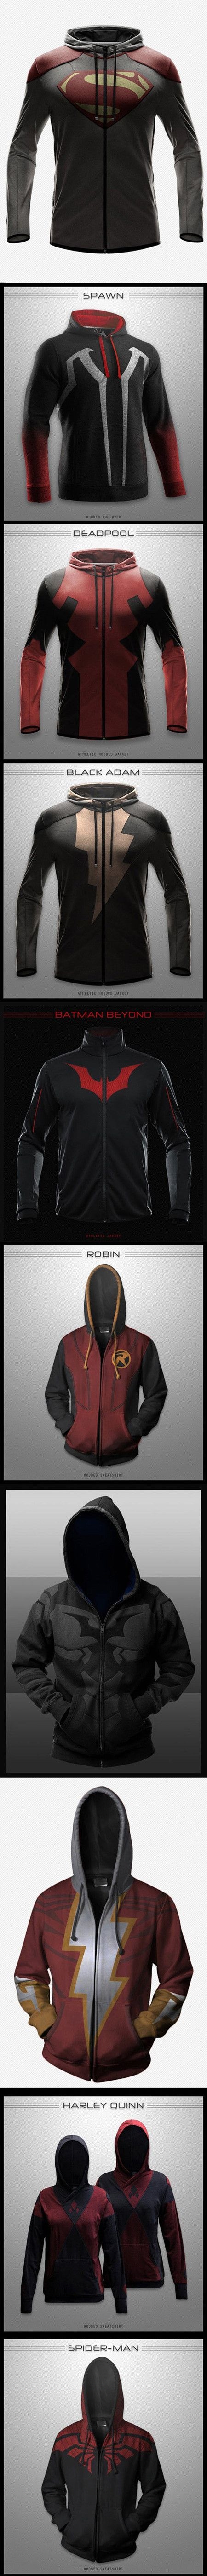 Oh my. If these were real, I would buy all of them.